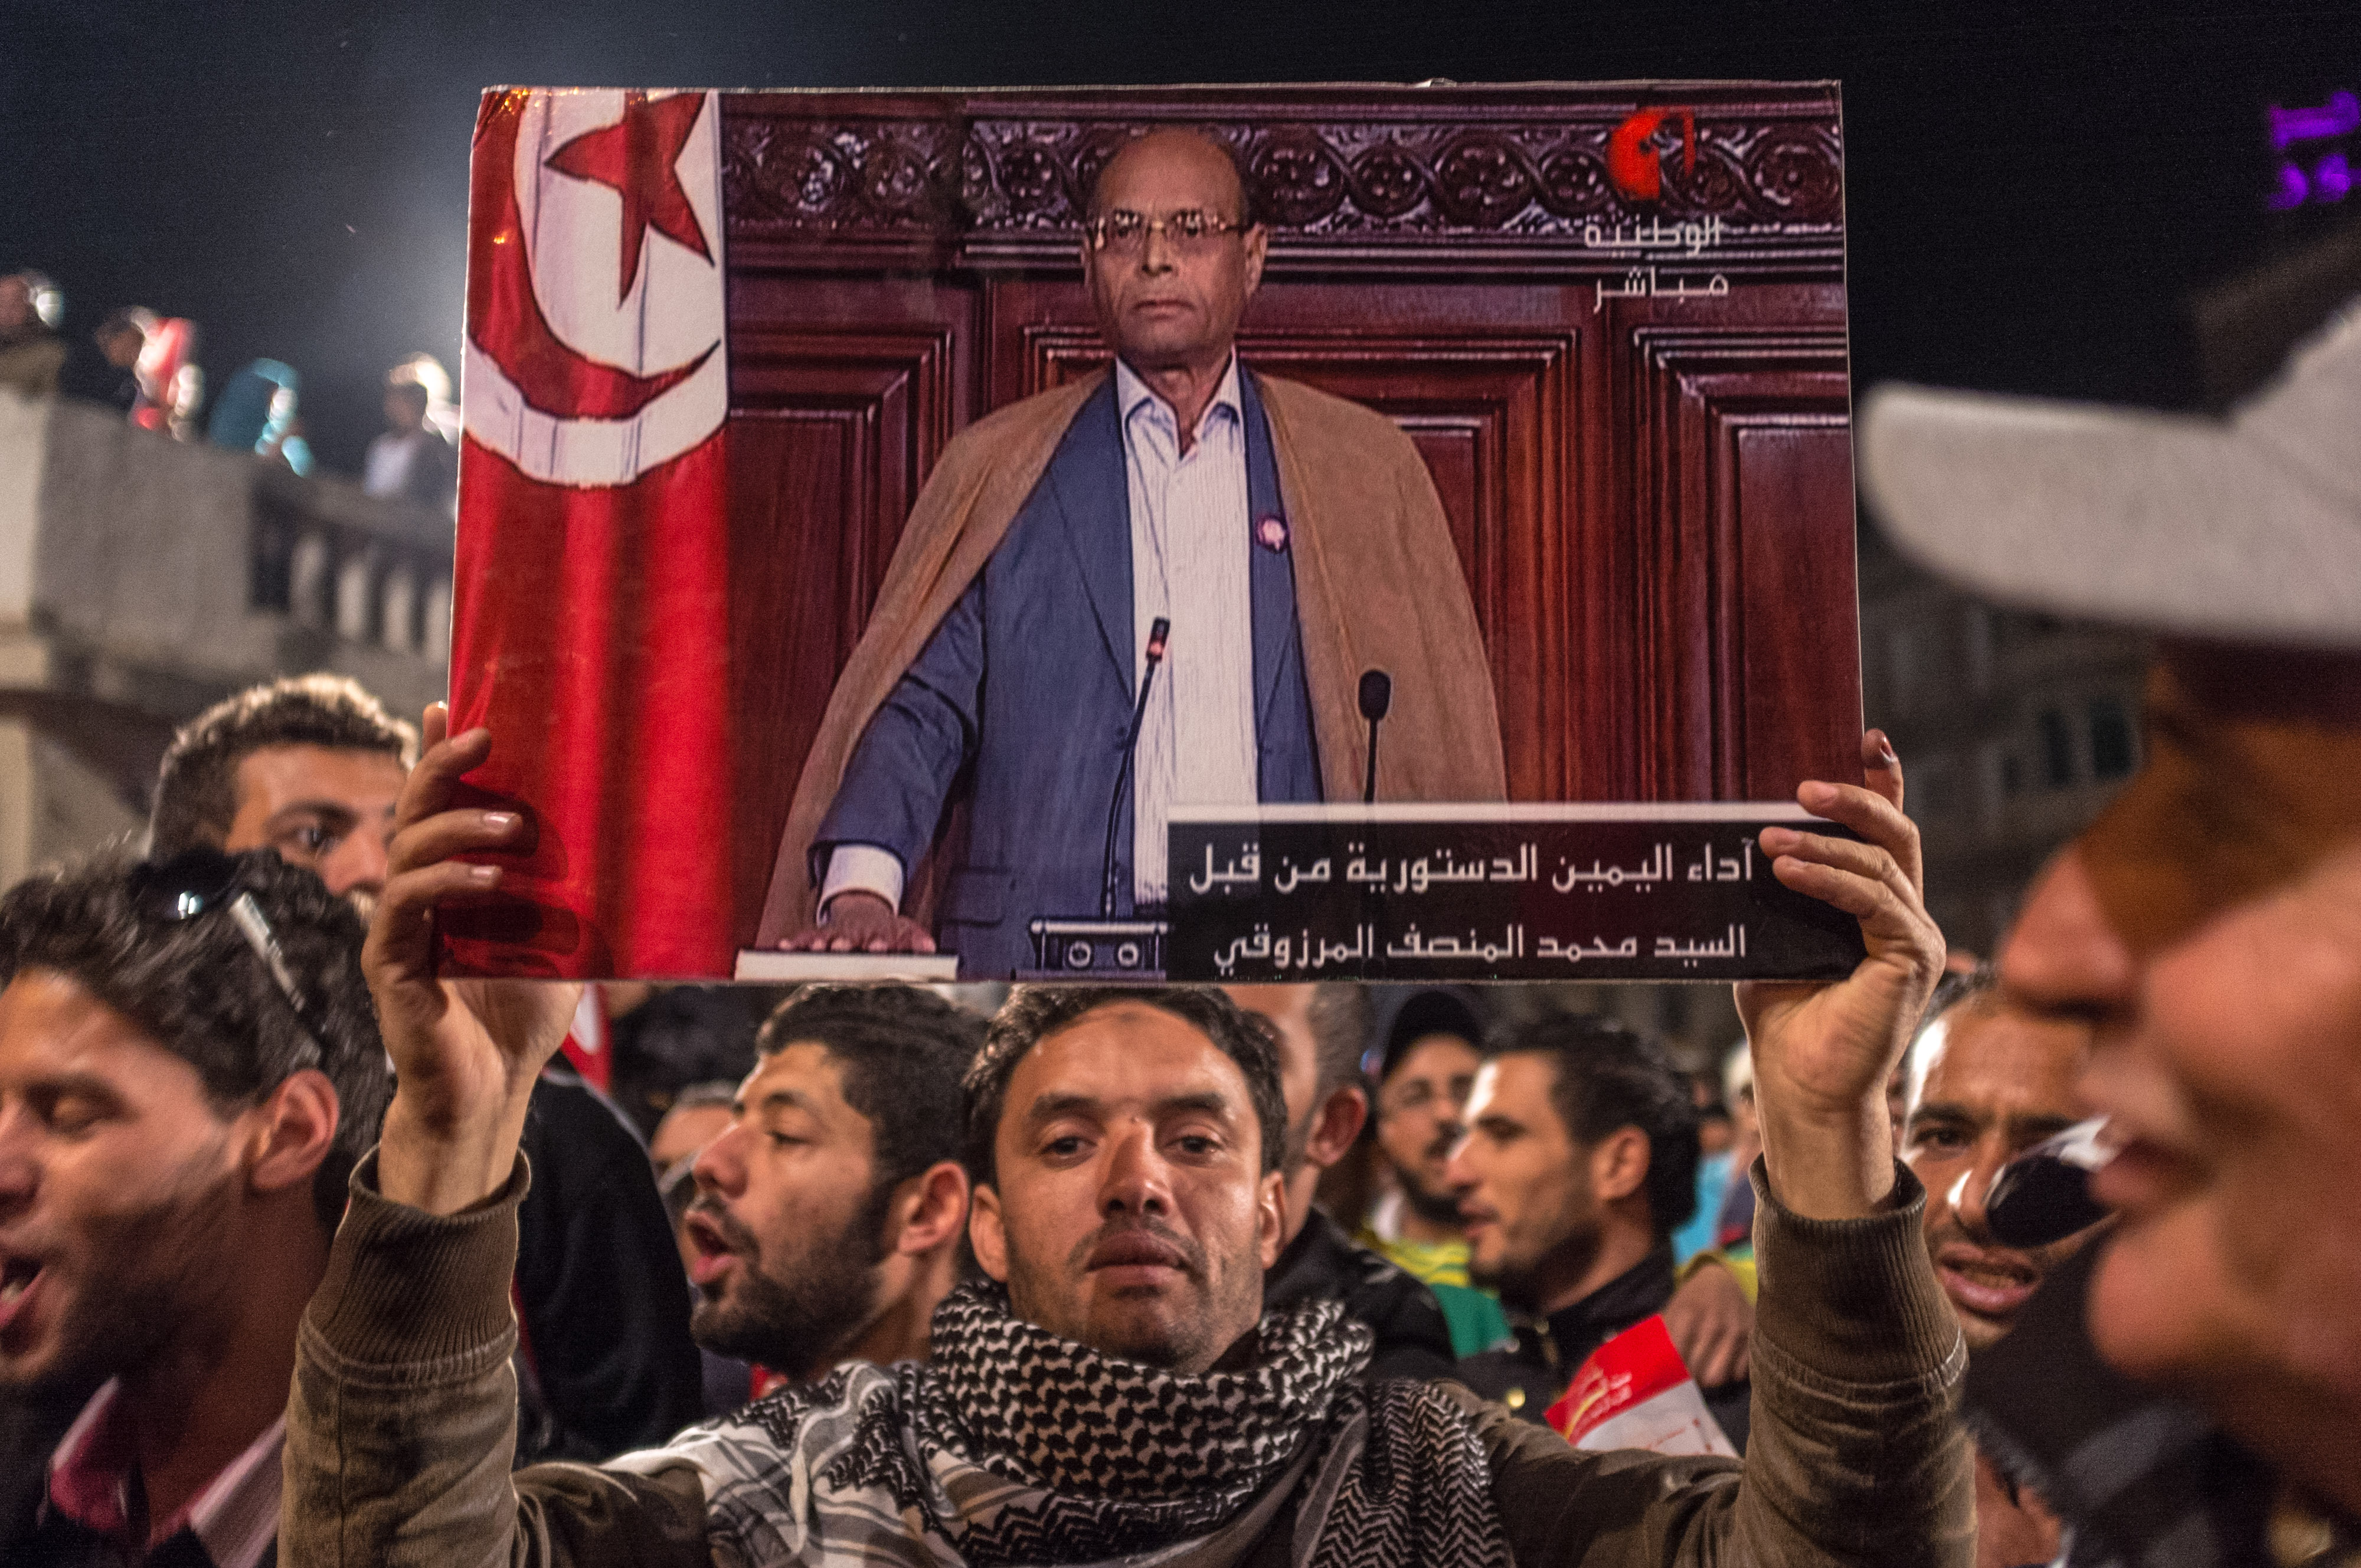 A man holds up a picture of Tunisian presidential candidate Moncef Marzouki, as supporters gather to hear his speech after the second round of the country's presidential election, in Tunis, Sunday, Dec. 21, 2014.